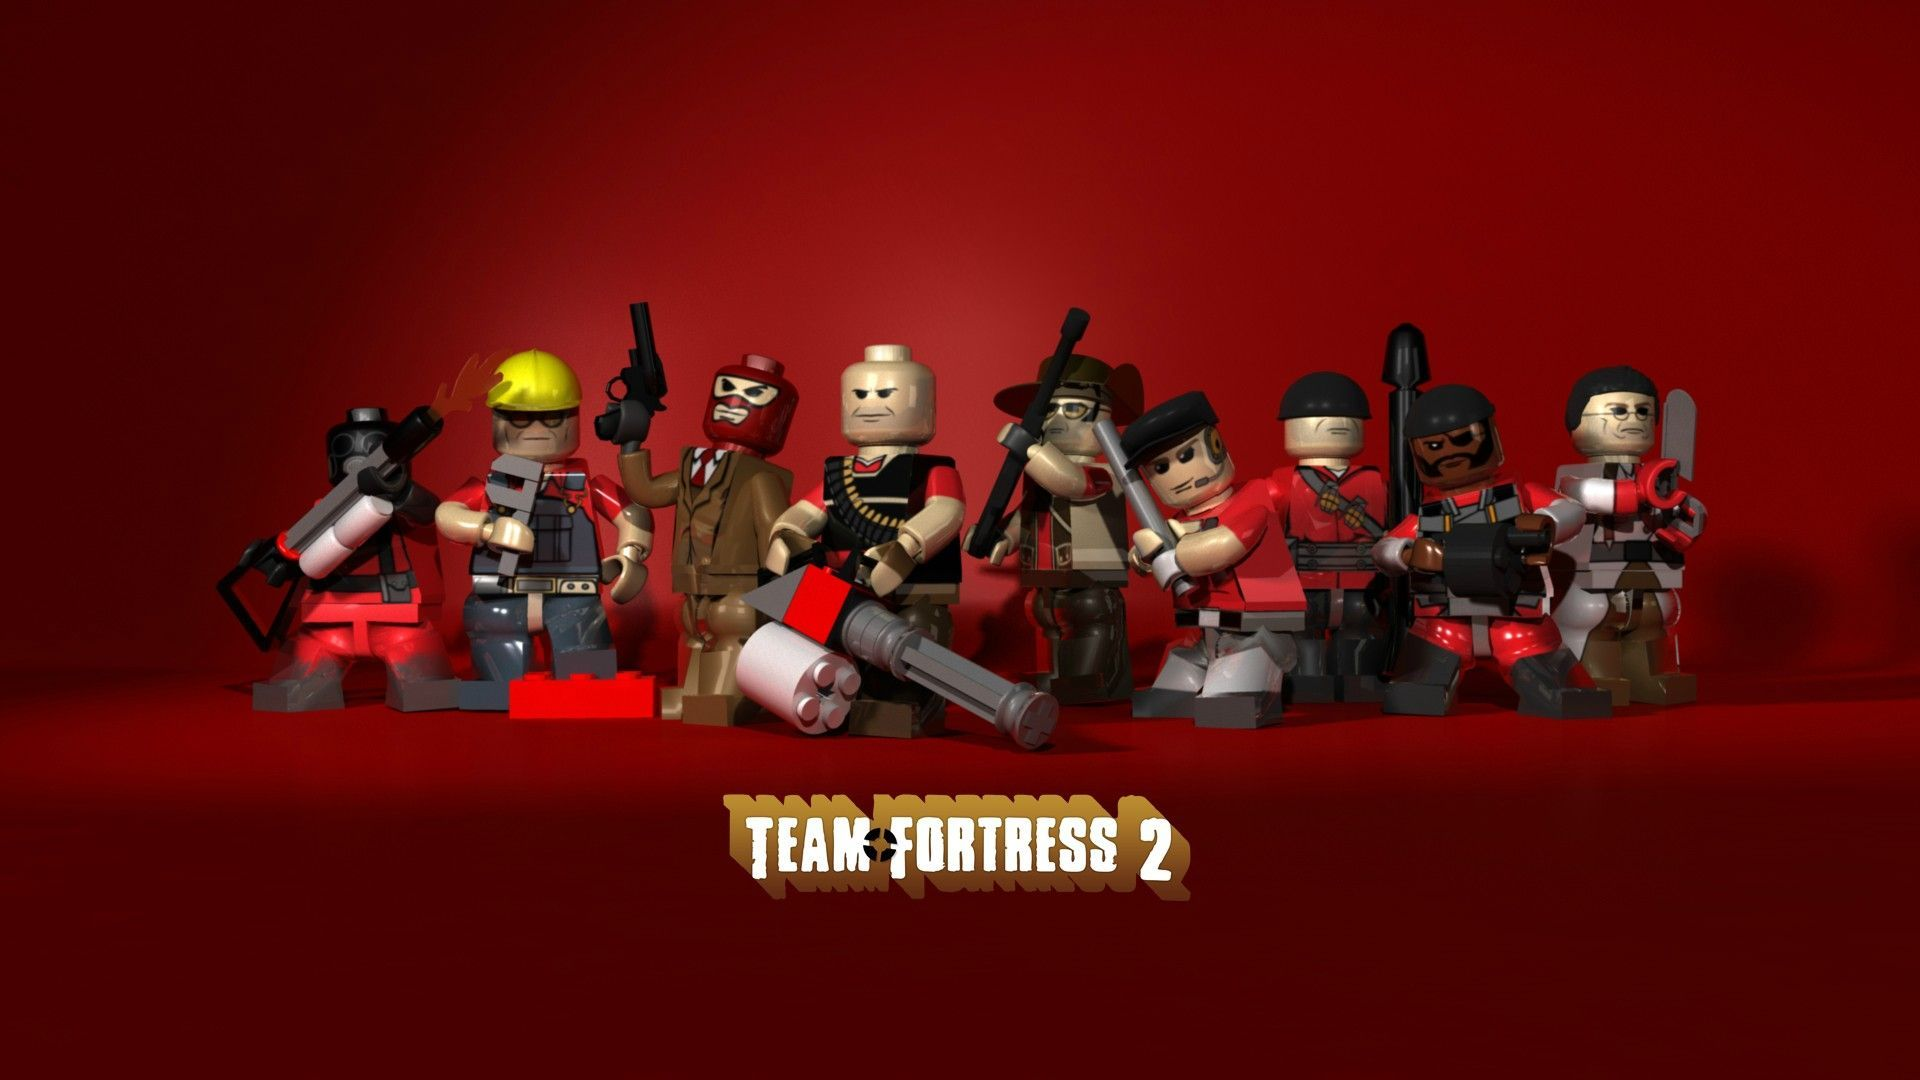 2440x1440 team fortress 2 images